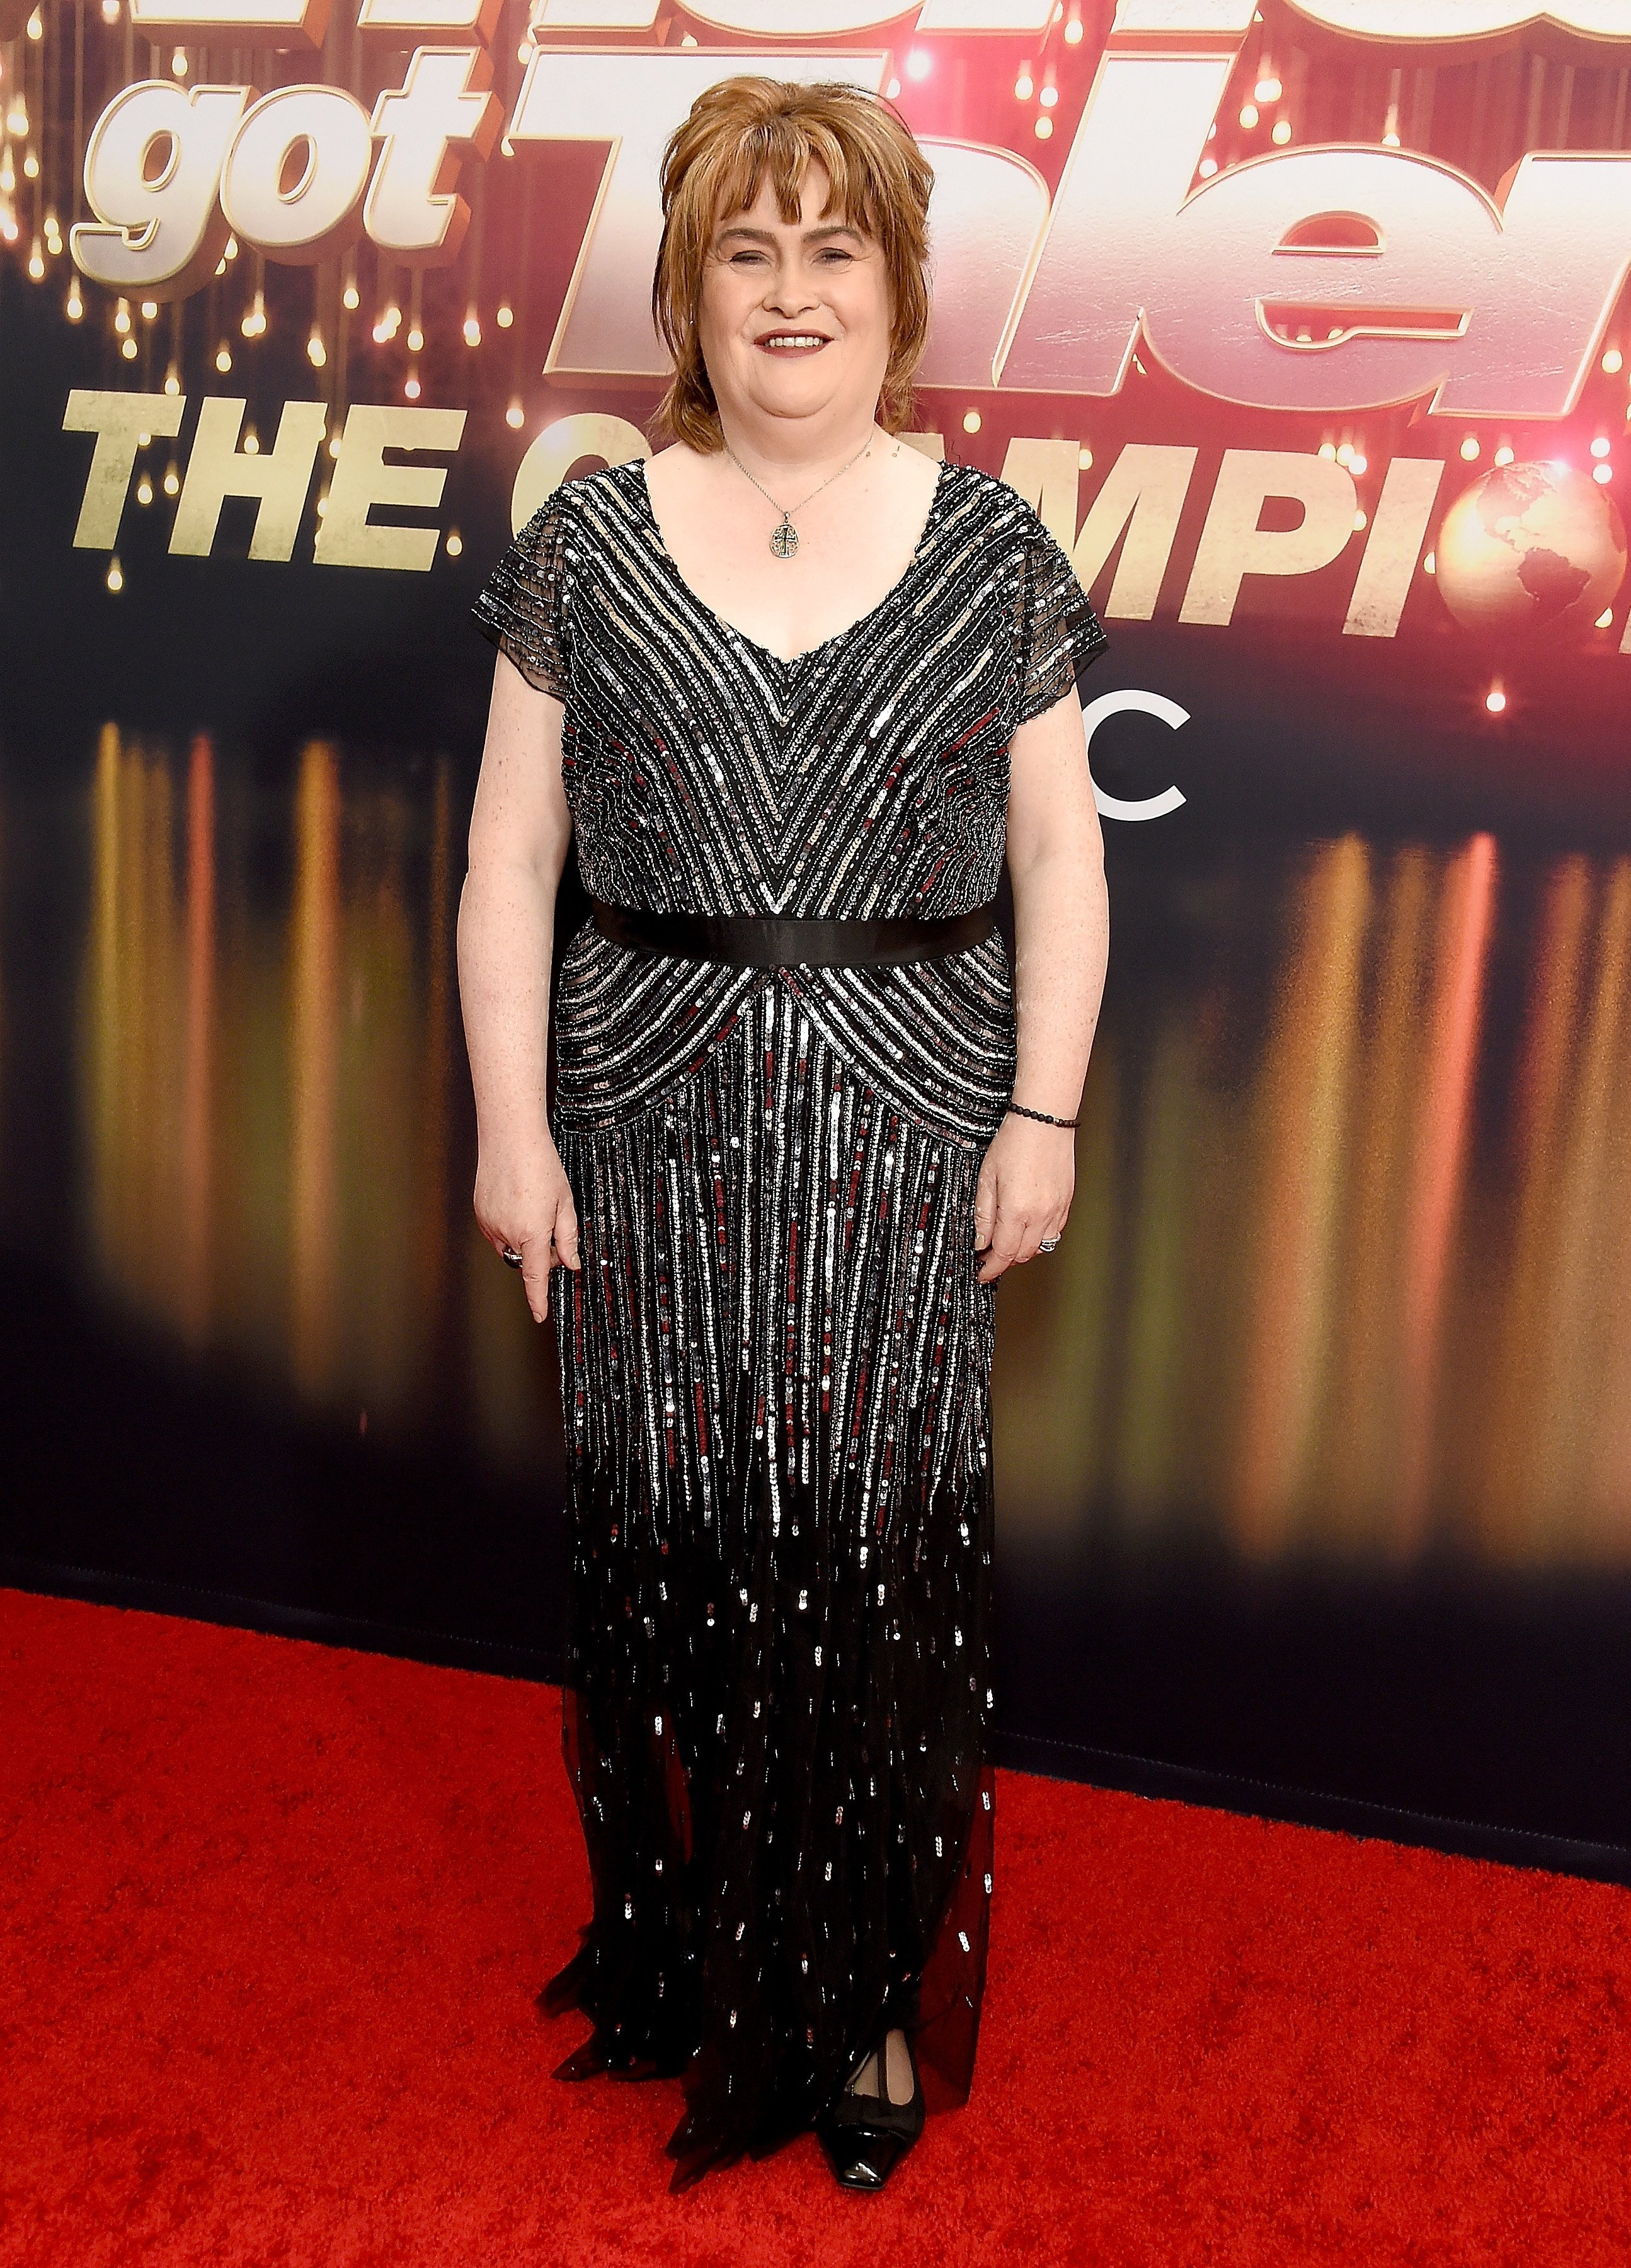 Susan Boyle posing in front of the show's banner | Photo: Getty Images